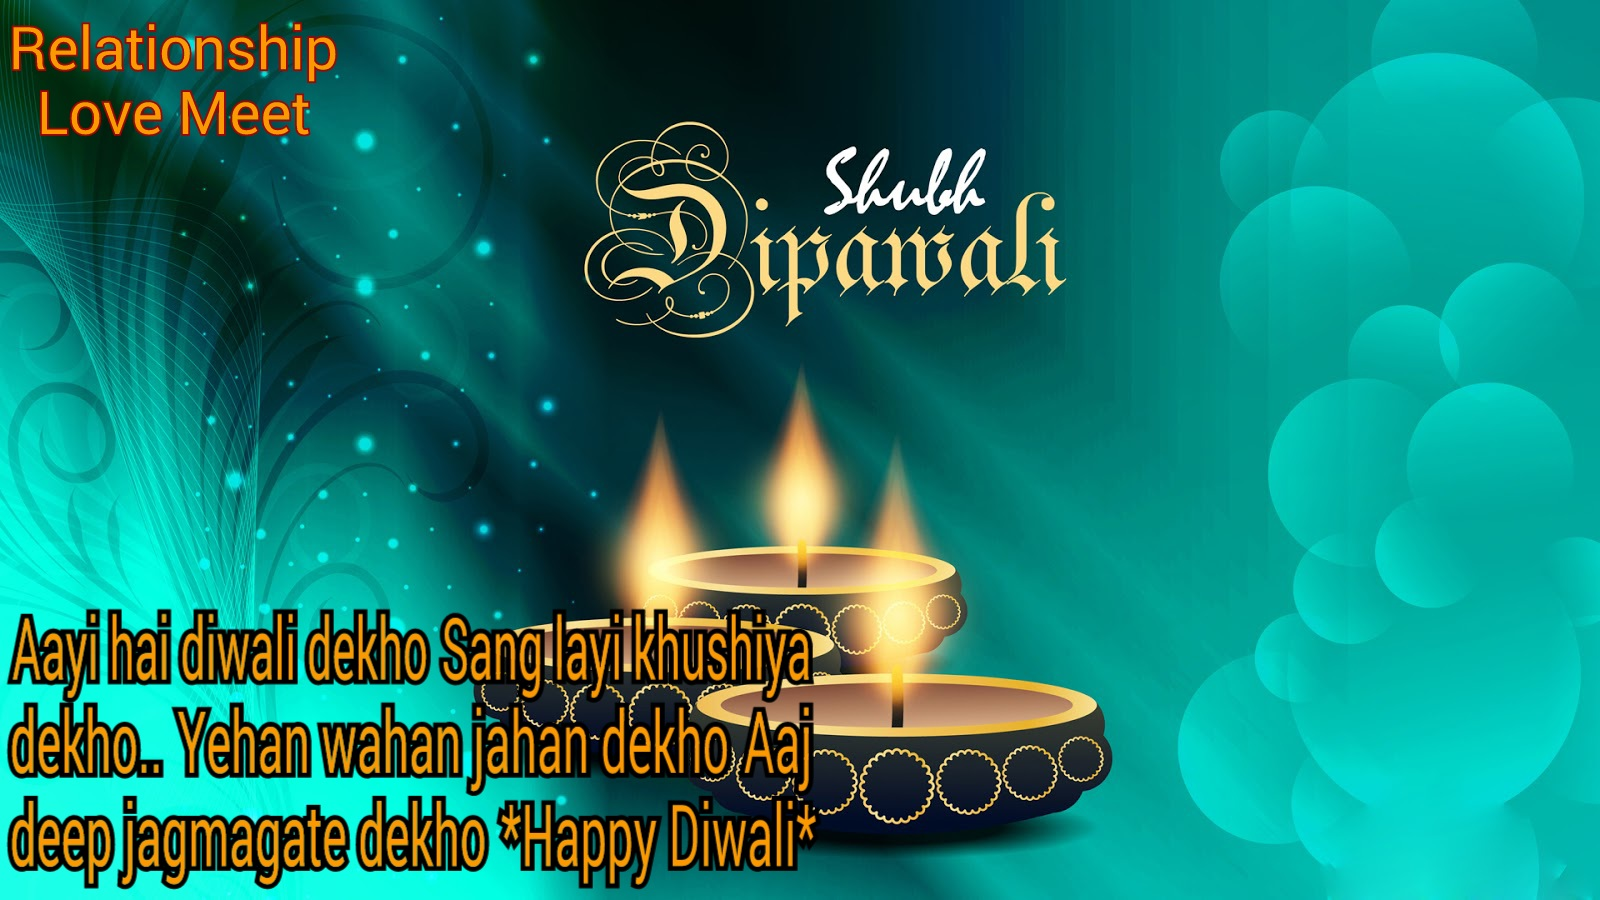 Fantastic Wallpaper Love Diwali - 2016-10-25-09-54-54-429  Snapshot_94241.jpg